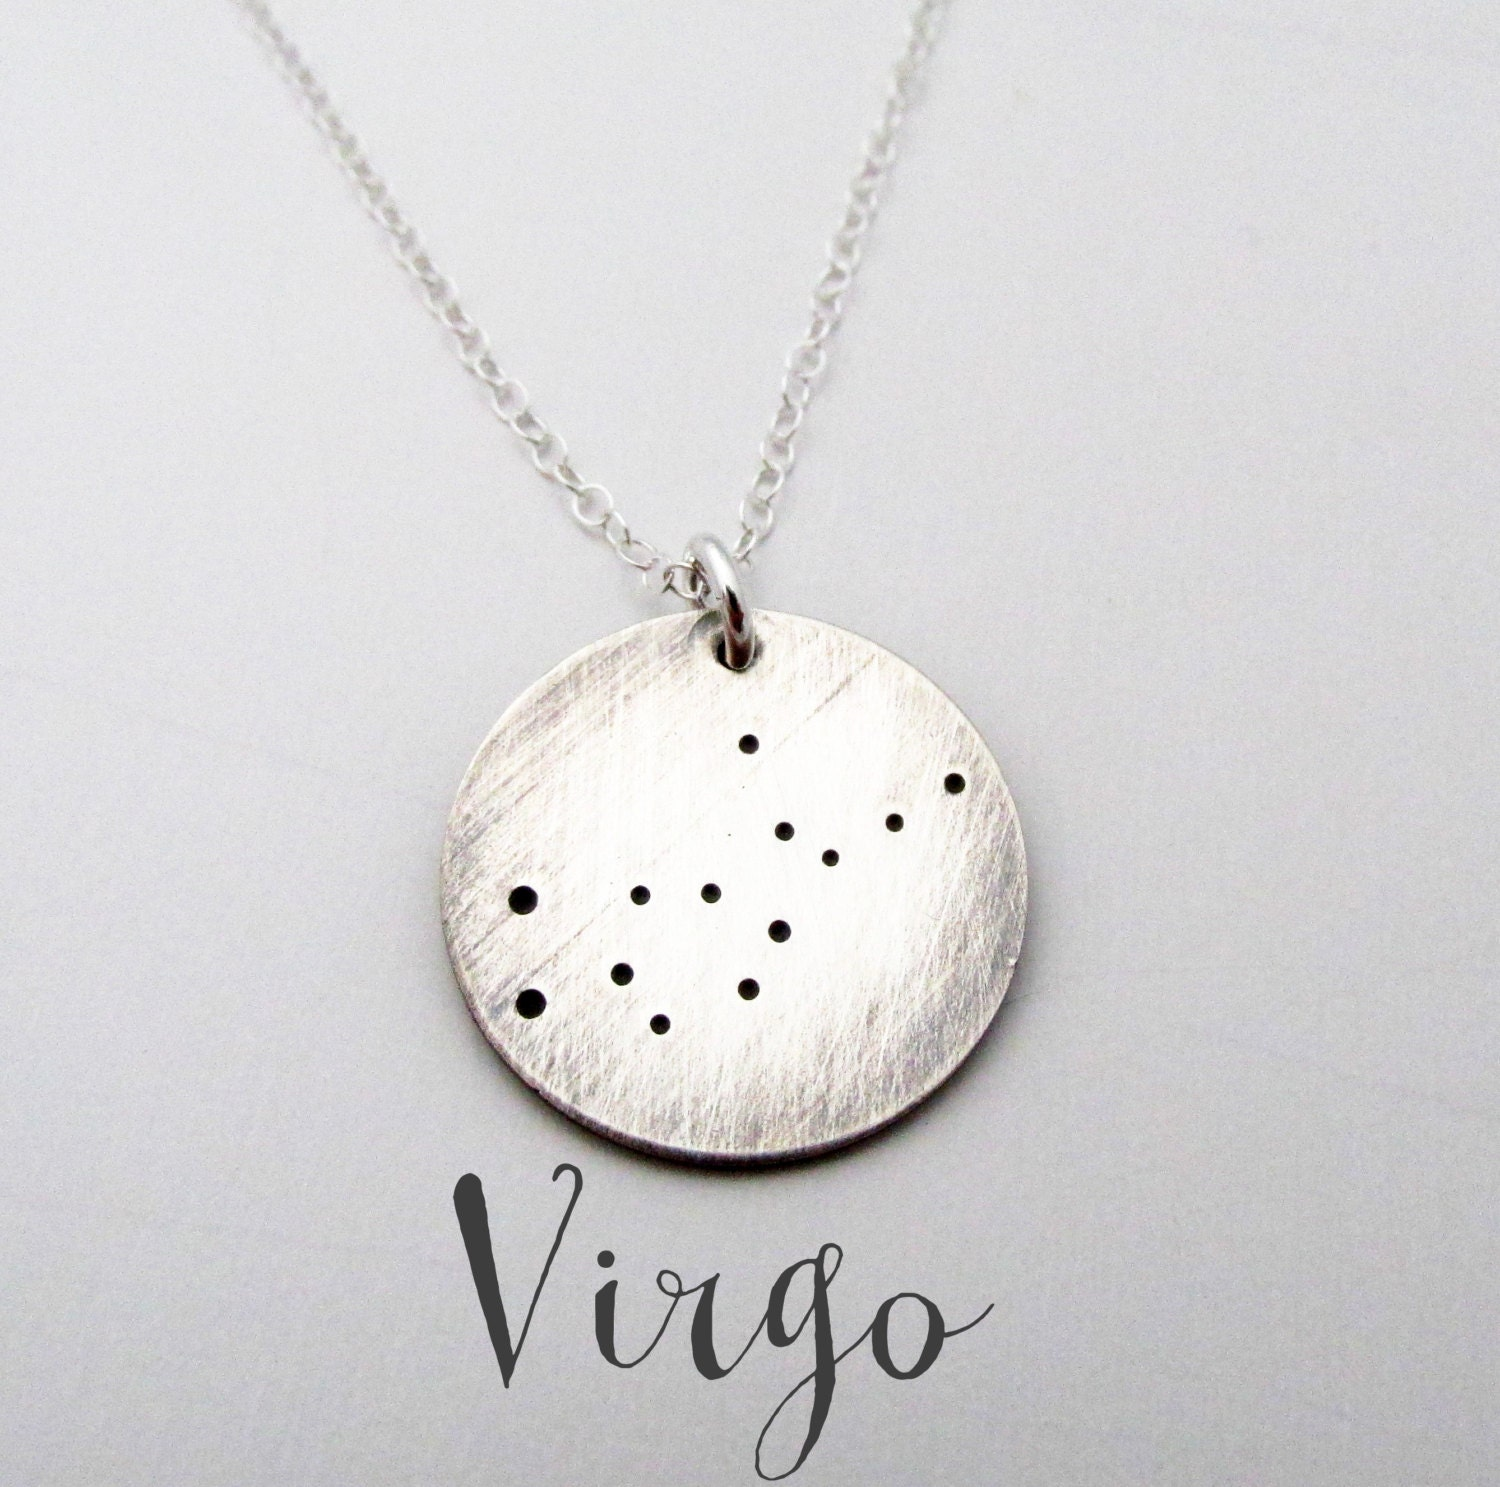 gb silver by in virgo sn en plated saccone anna designer stilnest necklace gold